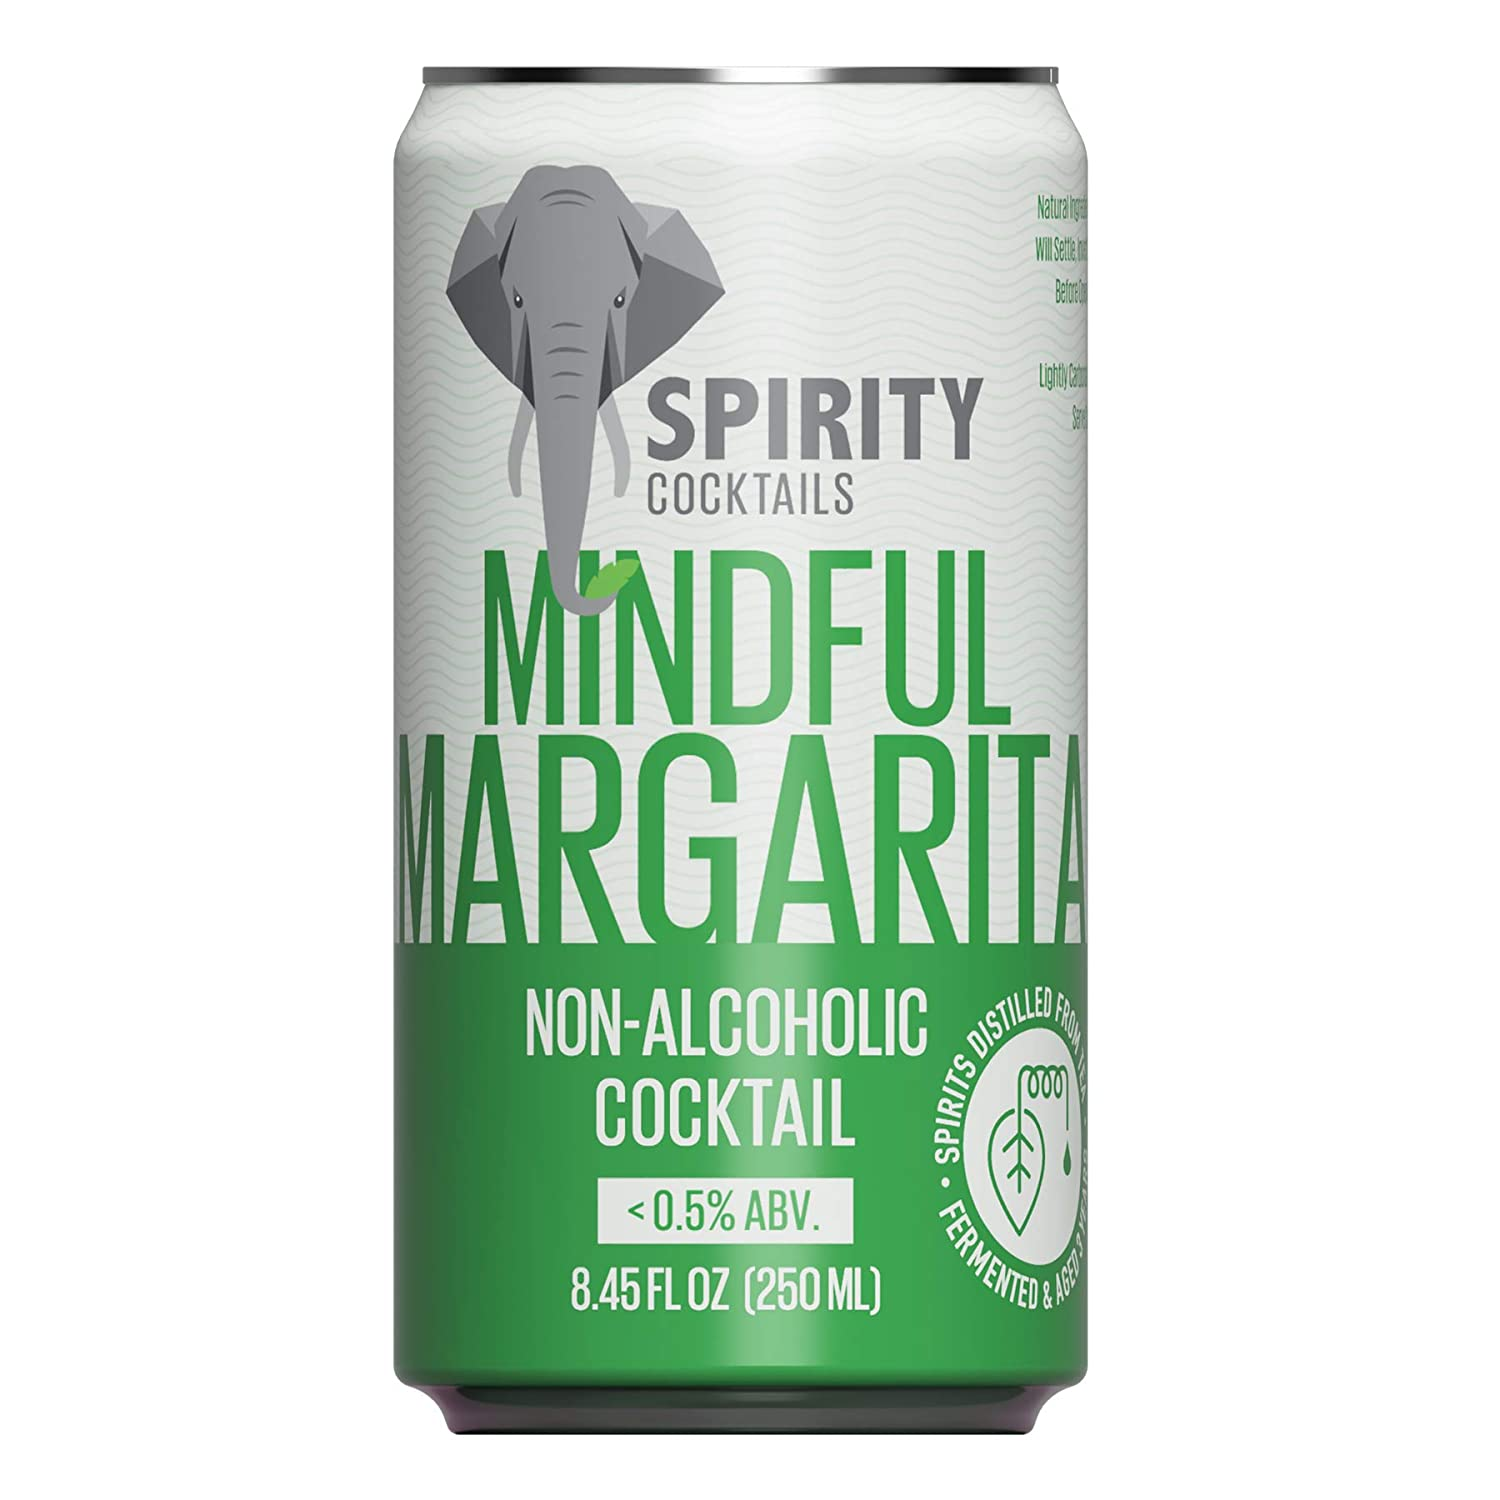 Spirity Cocktails - Mindful Margarita, Non-Alcoholic Cocktail, Spirits Distilled from Tea, 8.45 fl oz Cans (4-Pack)